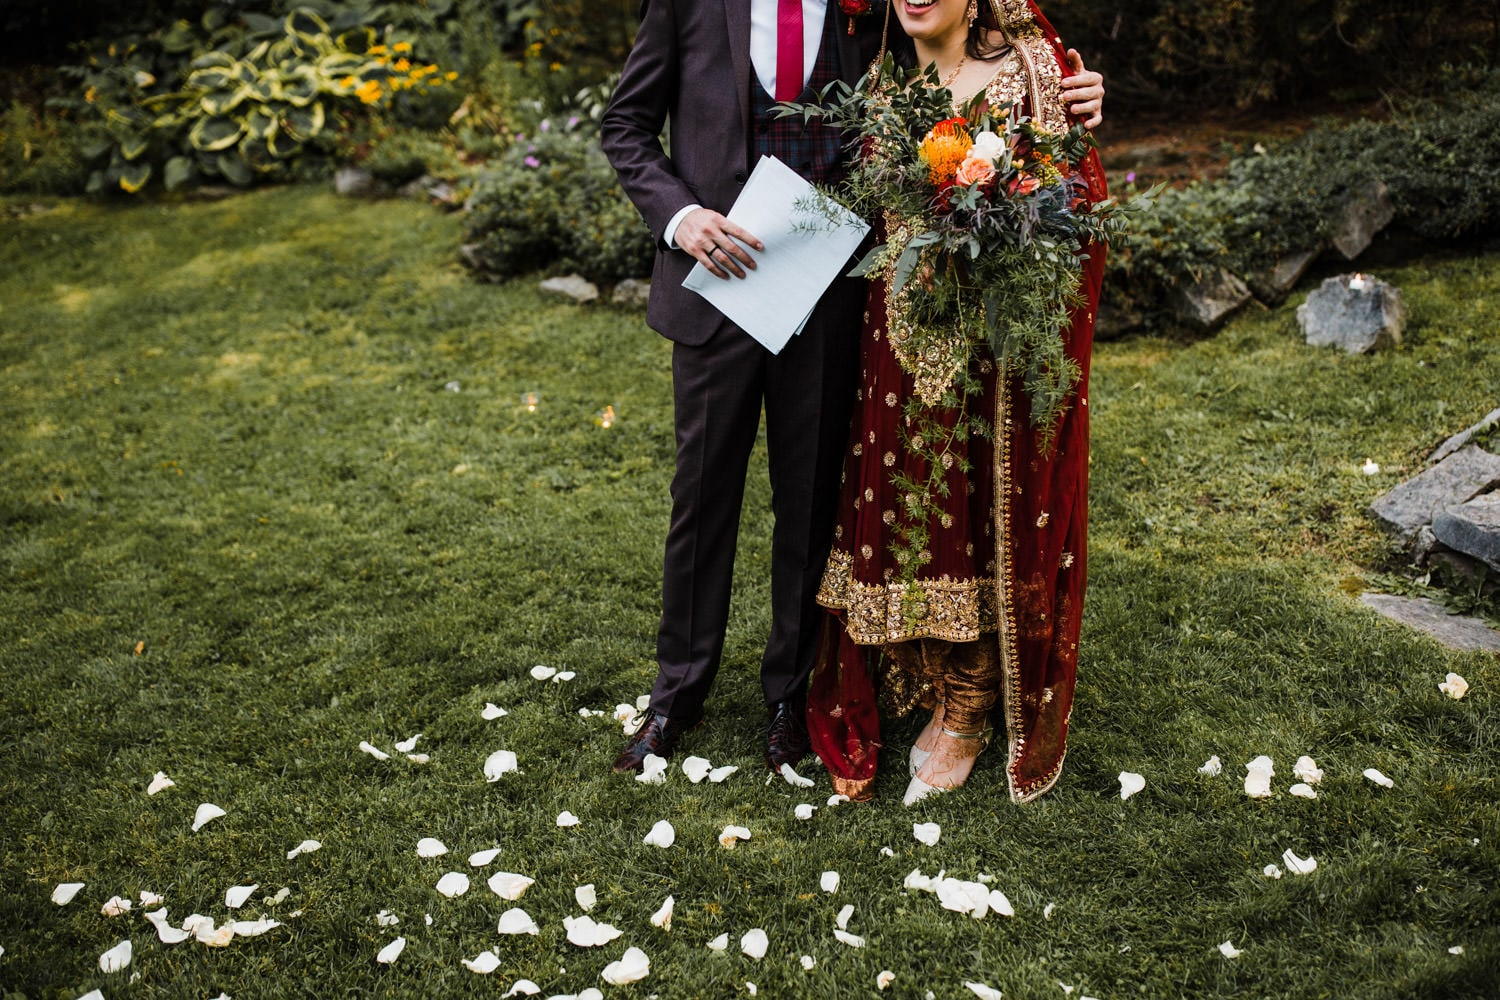 groom holds paperwork as bride and groom stand among rose petals